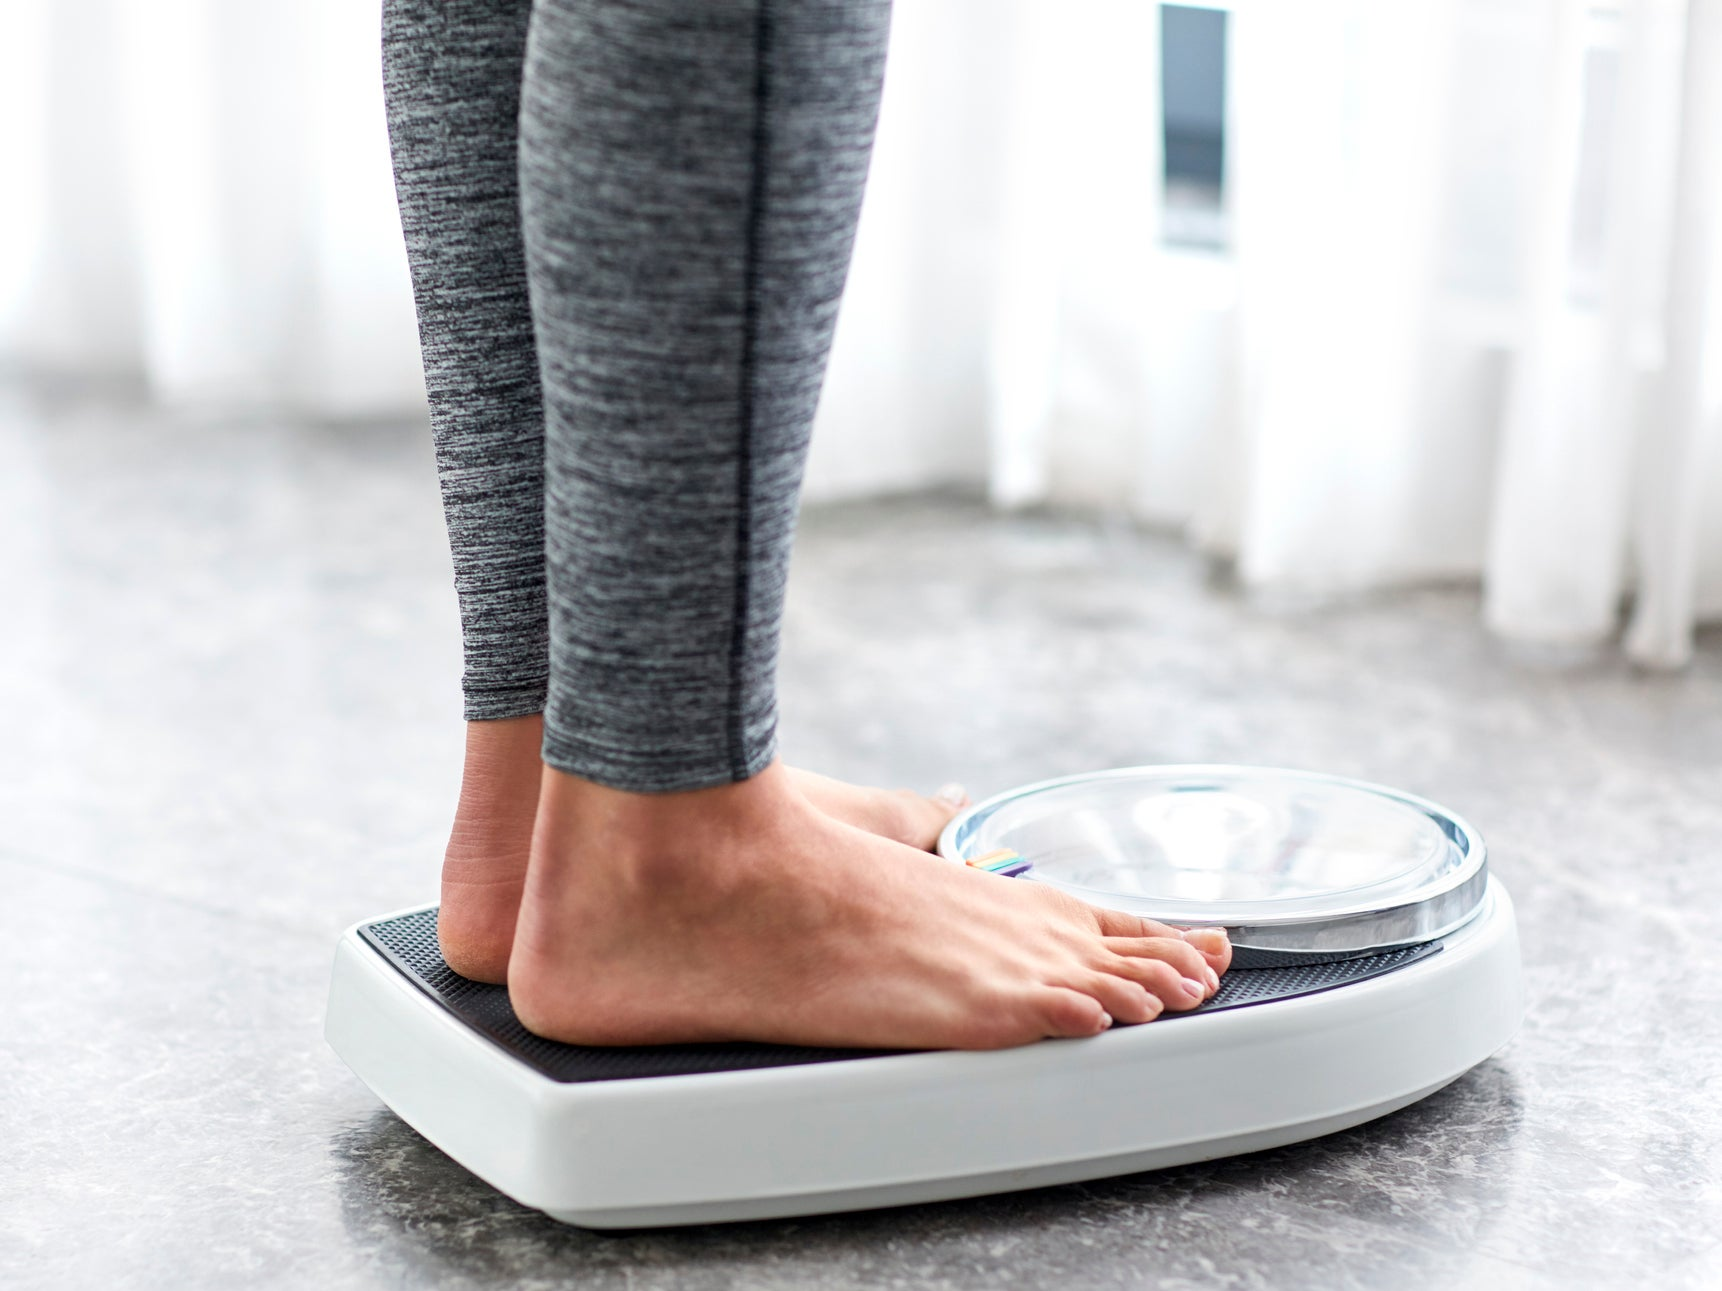 Please stop praising my weight loss – and help the body positivity movement challenge deep-rooted body ideals